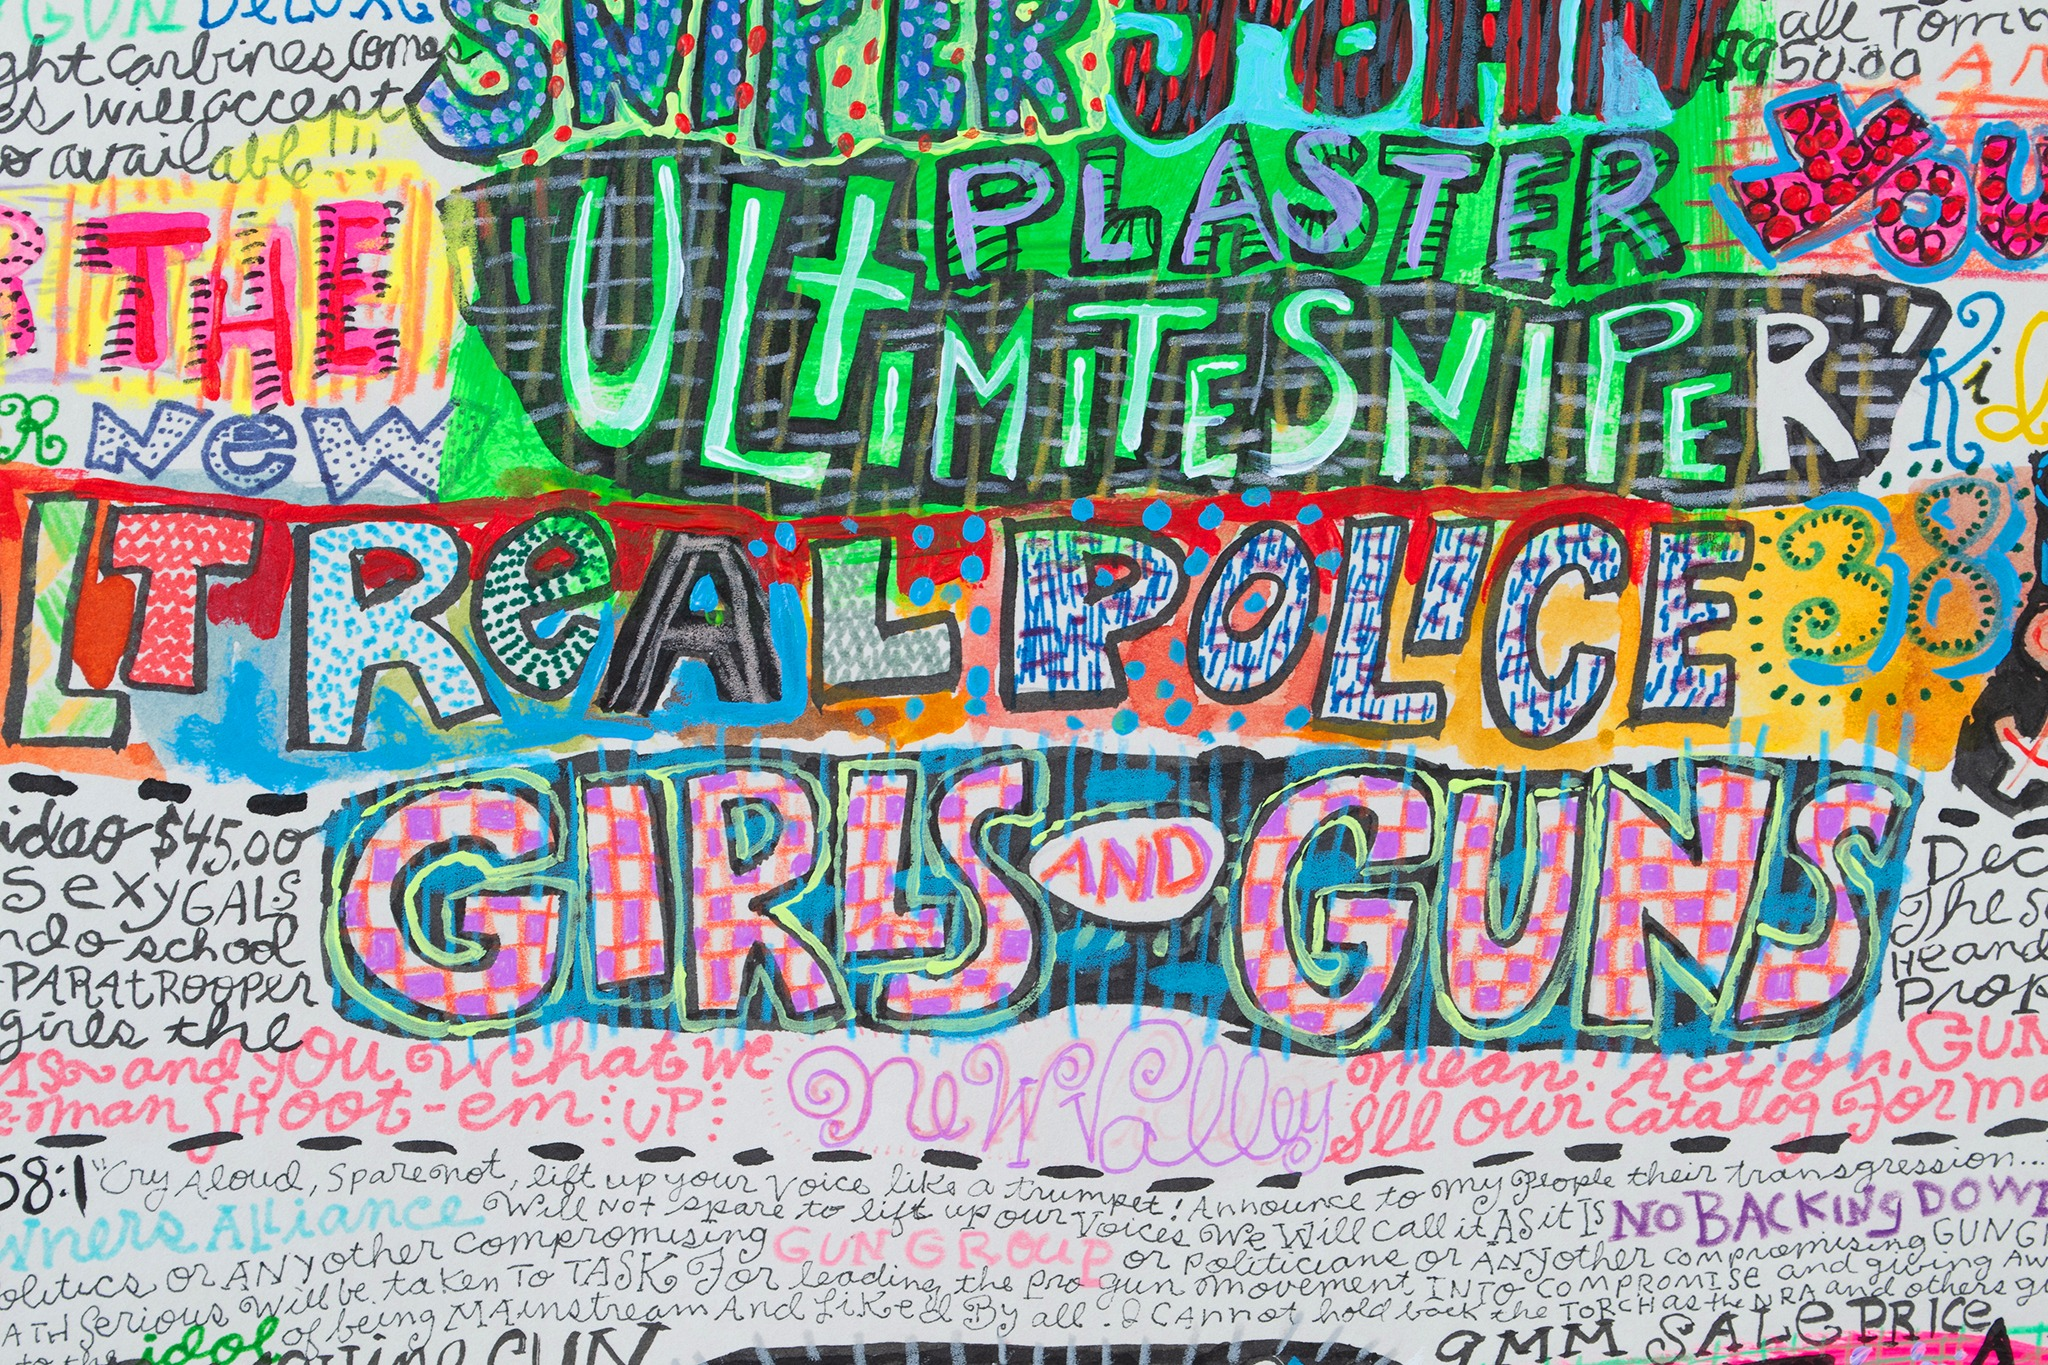 A detail of a painting by Bruce Burris titled Girls and Guns, dated 2020.